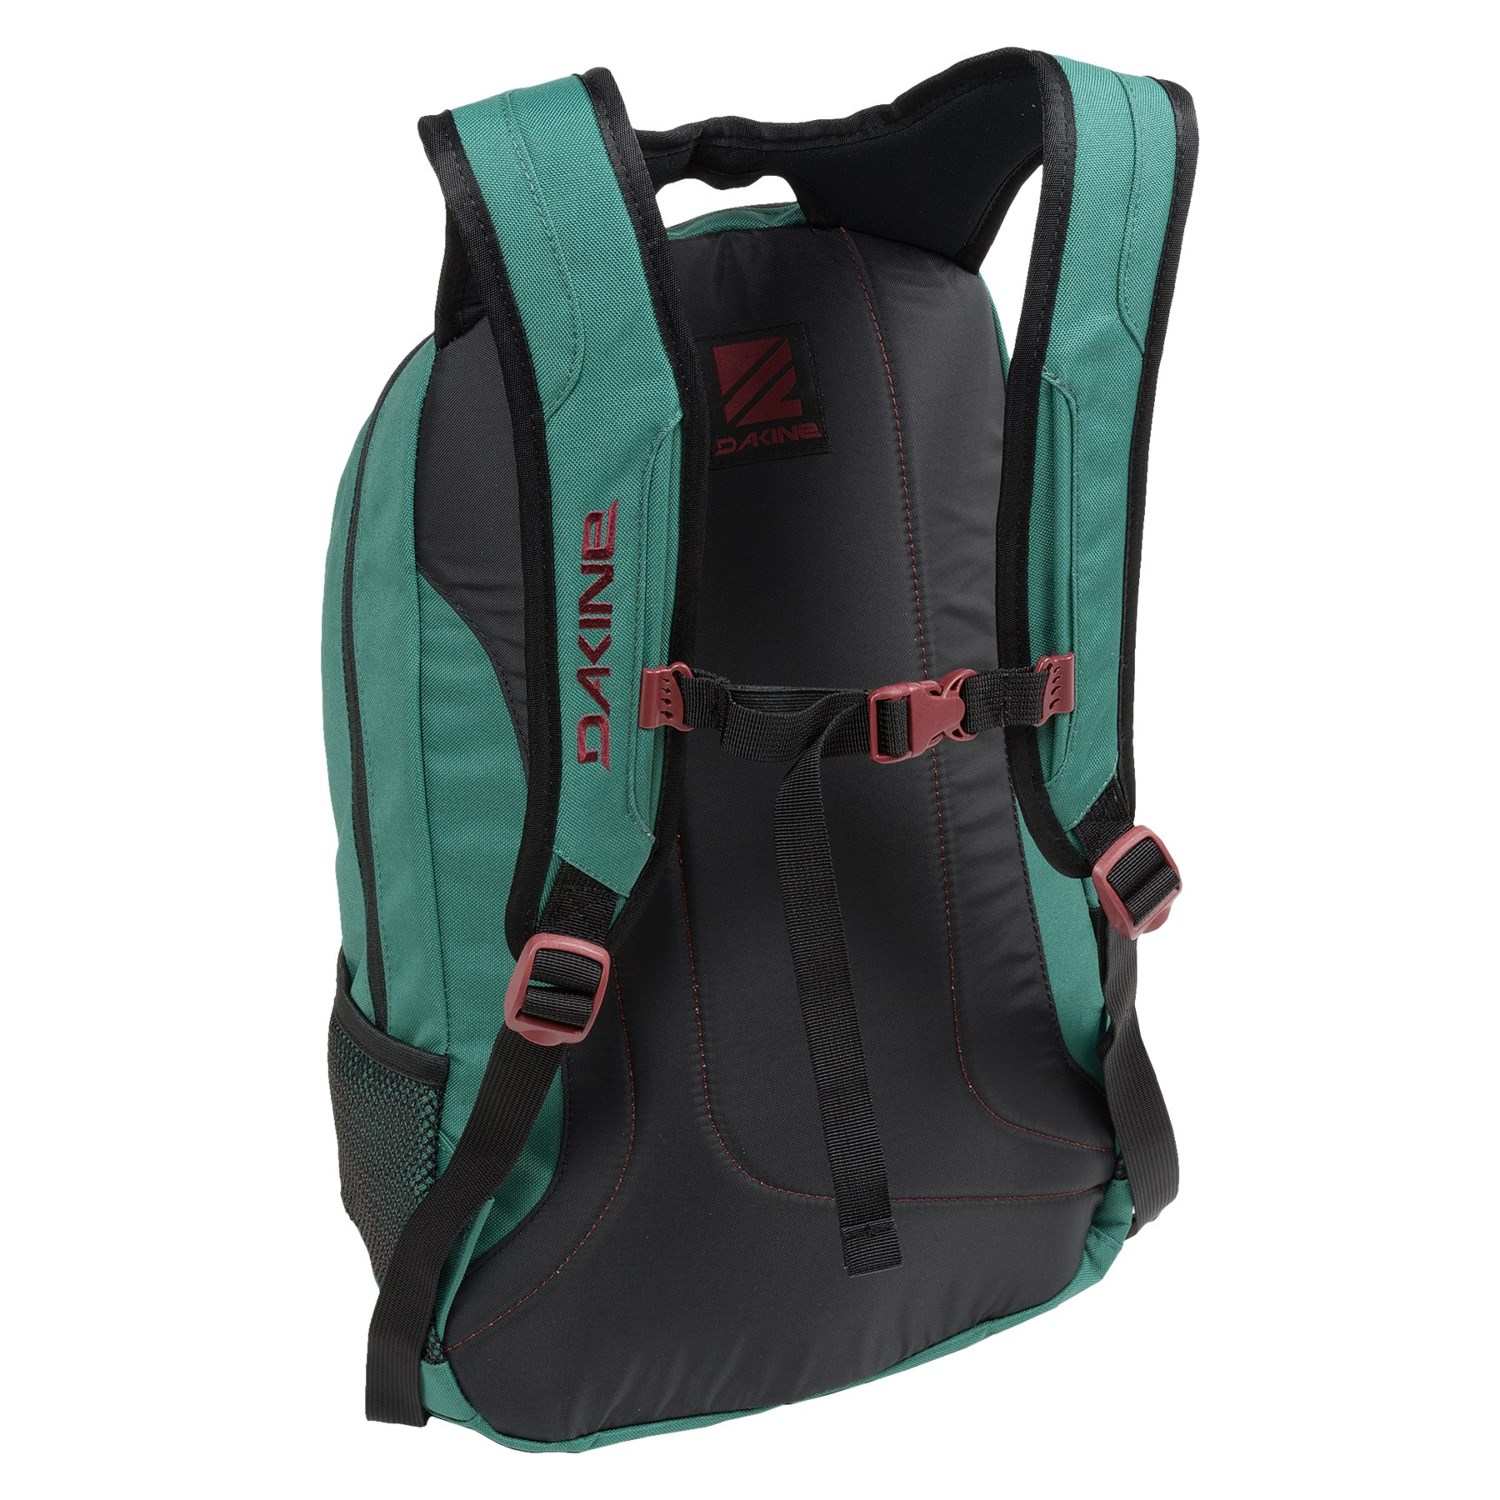 DaKine Factor 22L Backpack - Save 44%